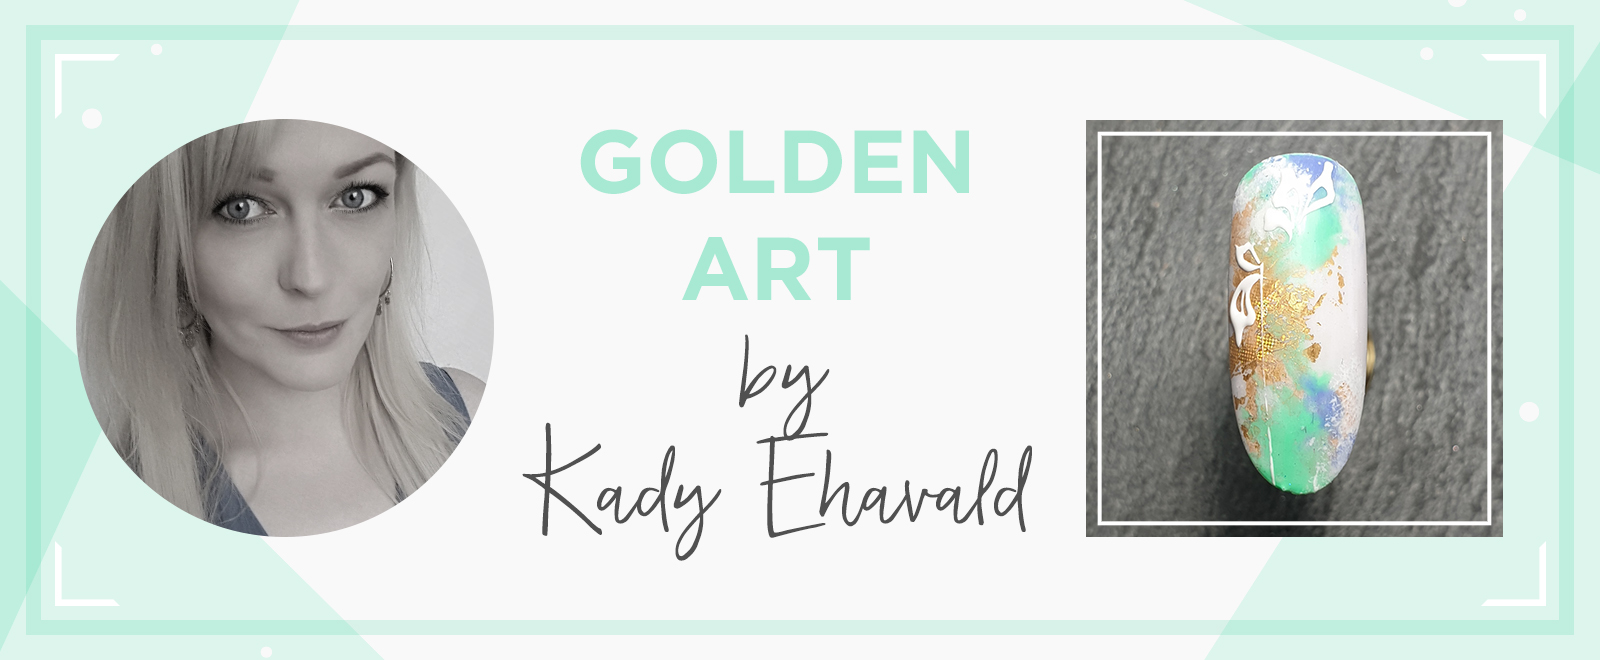 SBS_header_template_1600x660_golden-art_Kady-Ehavald